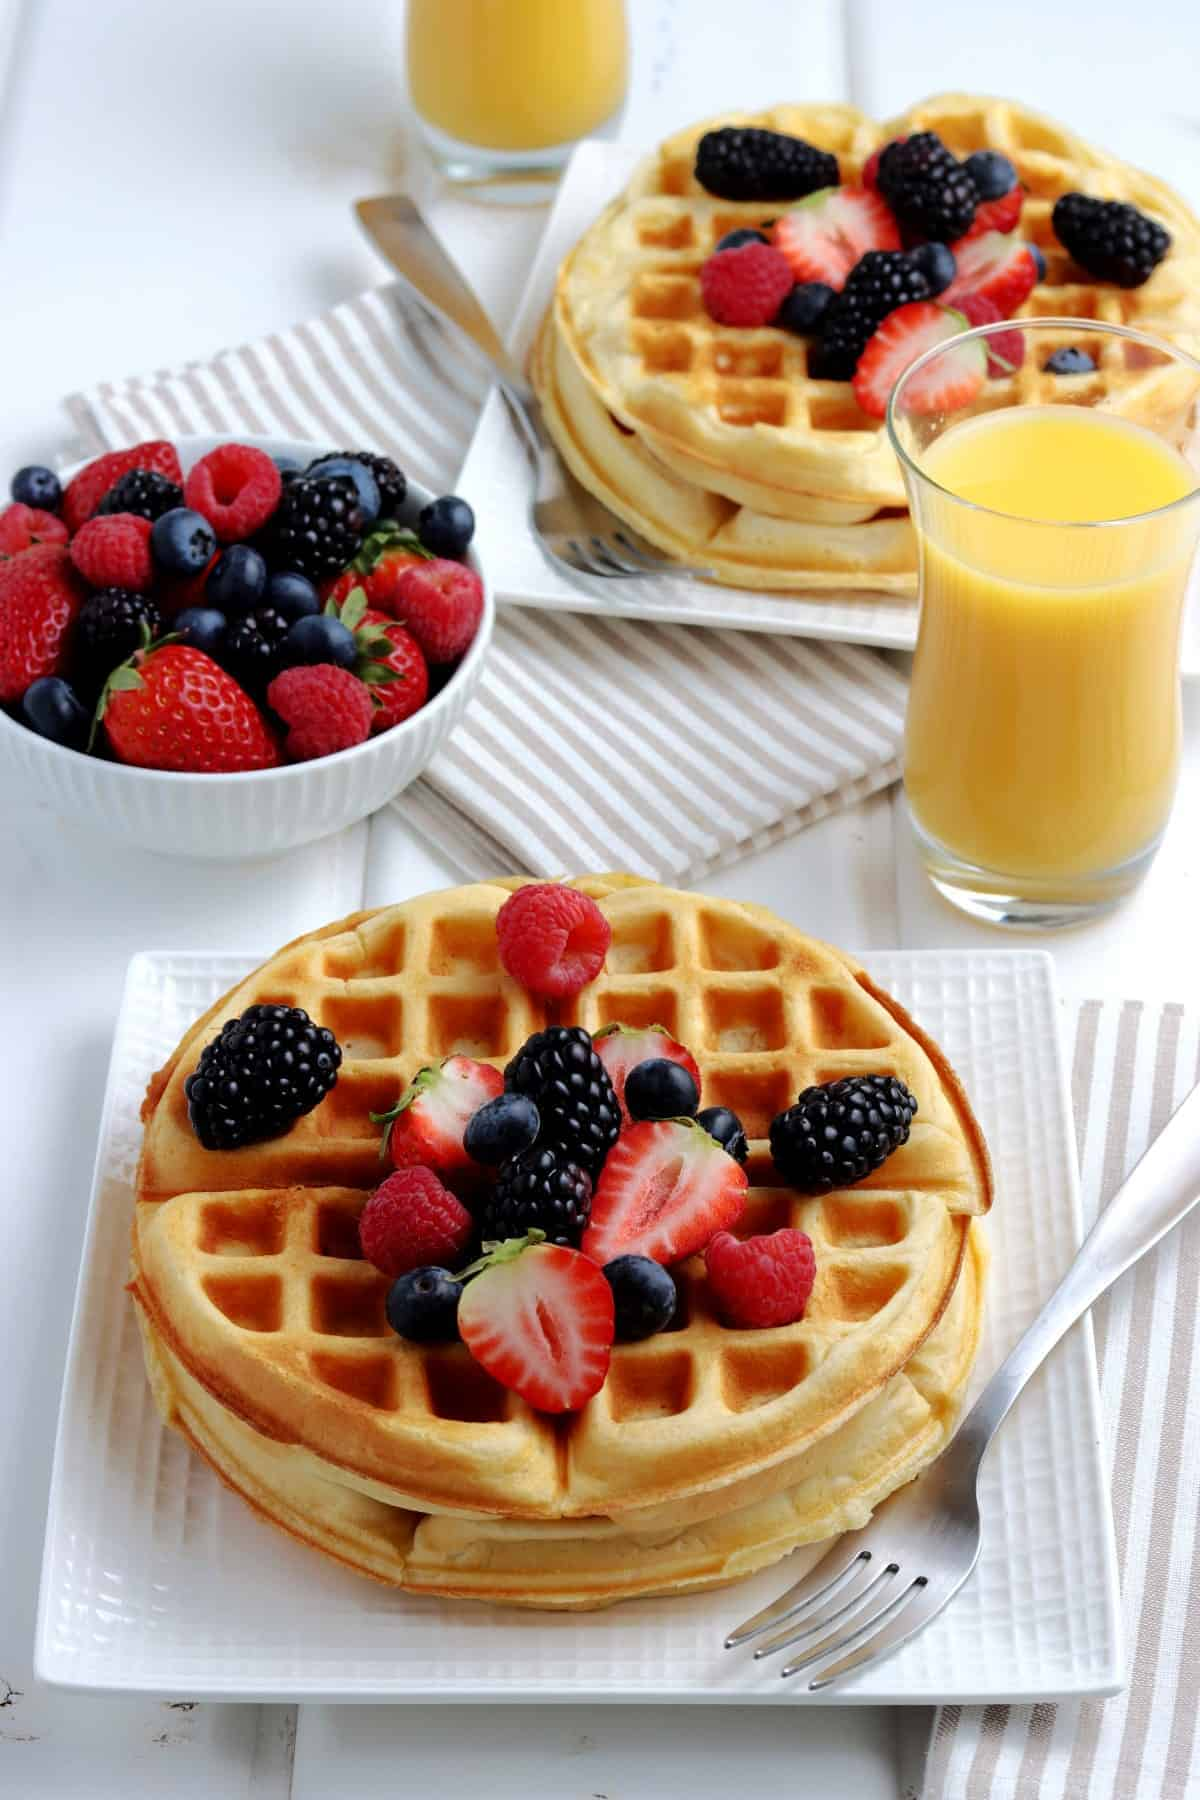 Full setting at the table with homemade waffles recipe, oj, berries and syrup.